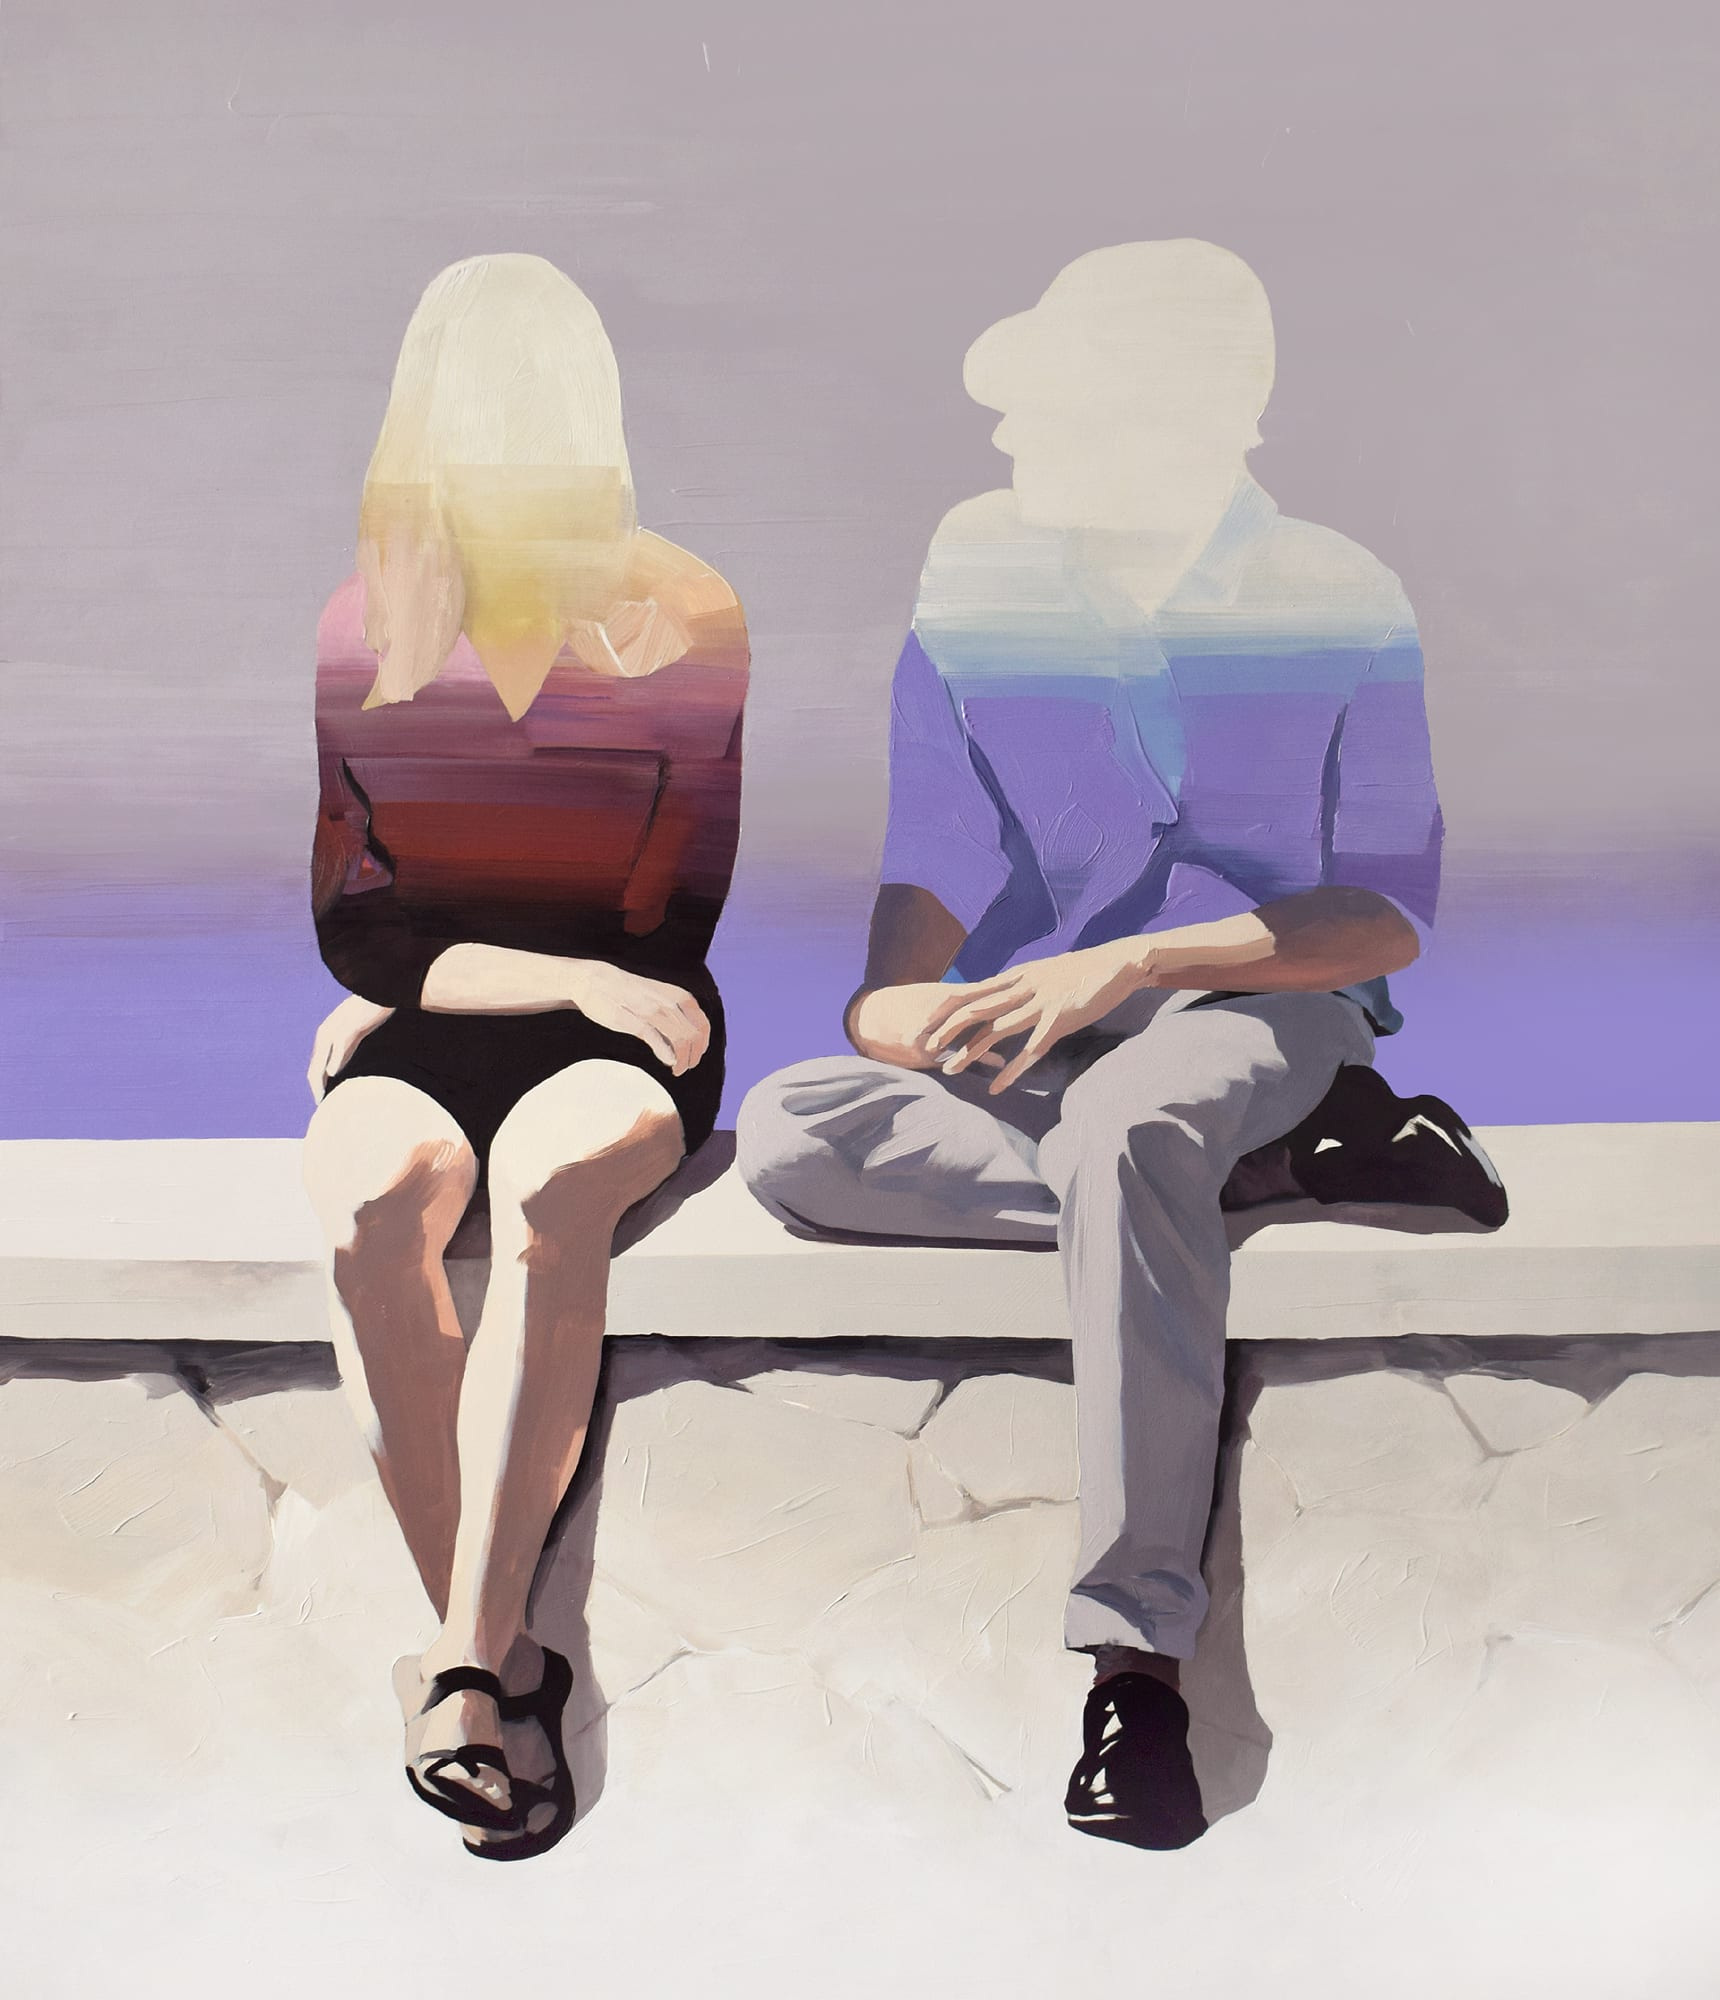 "<span class=""link fancybox-details-link""><a href=""/artists/54-jarek-puczel/works/574-jarek-puczel-couple-at-the-seaside/"">View Detail Page</a></span><div class=""artist""><strong>Jarek Puczel</strong></div> <div class=""title""><em>Couple at the Seaside </em></div> <div class=""medium"">Oil on Canvas </div> <div class=""dimensions"">55 x 47 inches <br /> </div>"